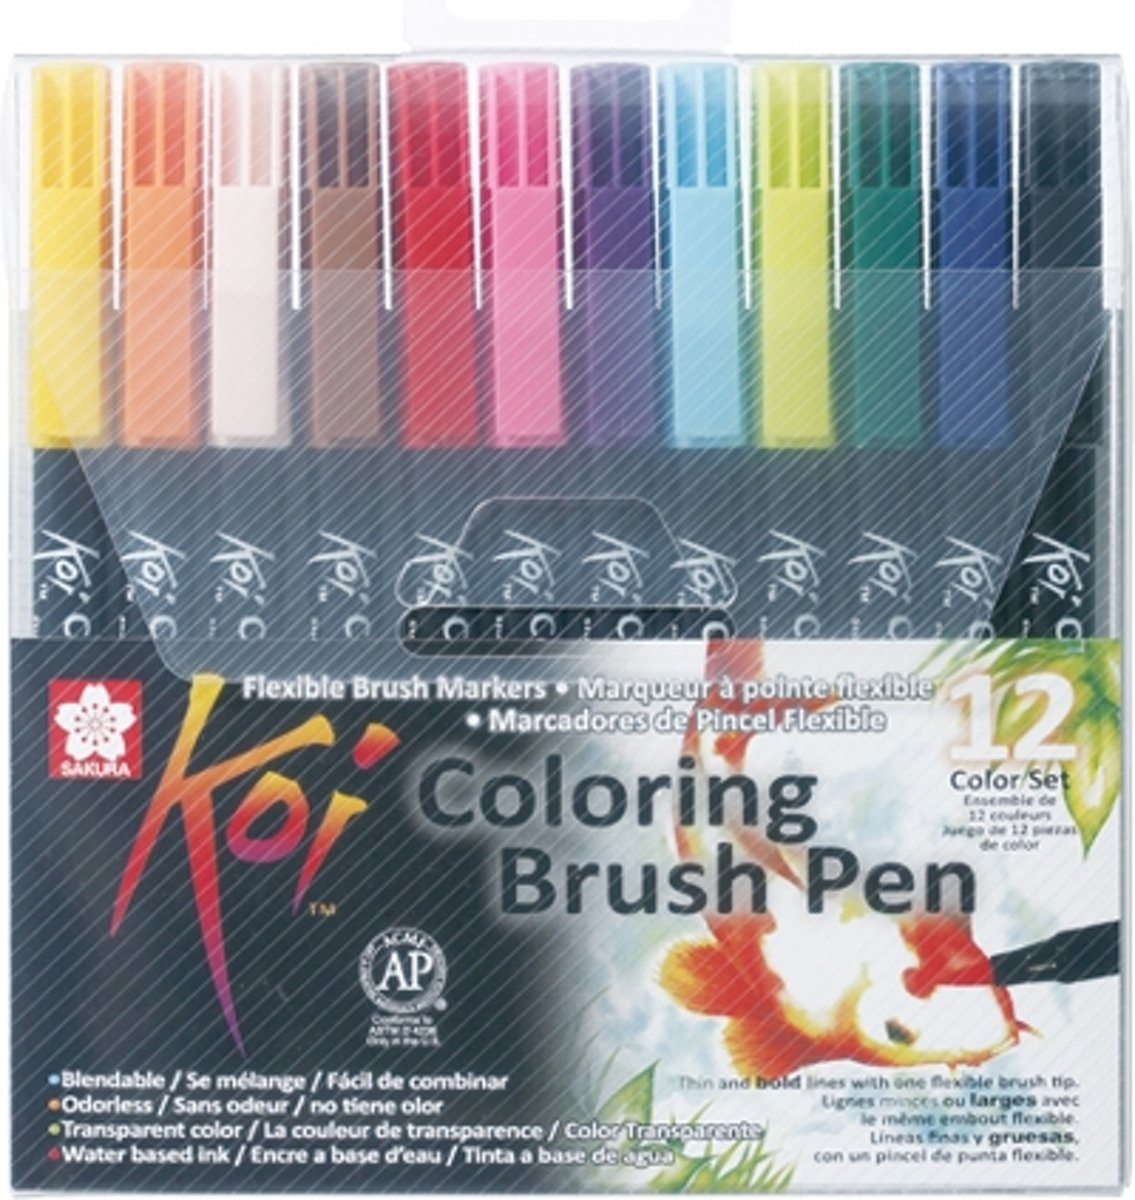 Koi Coloring Brush Pen set 12 kleuren brushpen penseelpen penseelstift